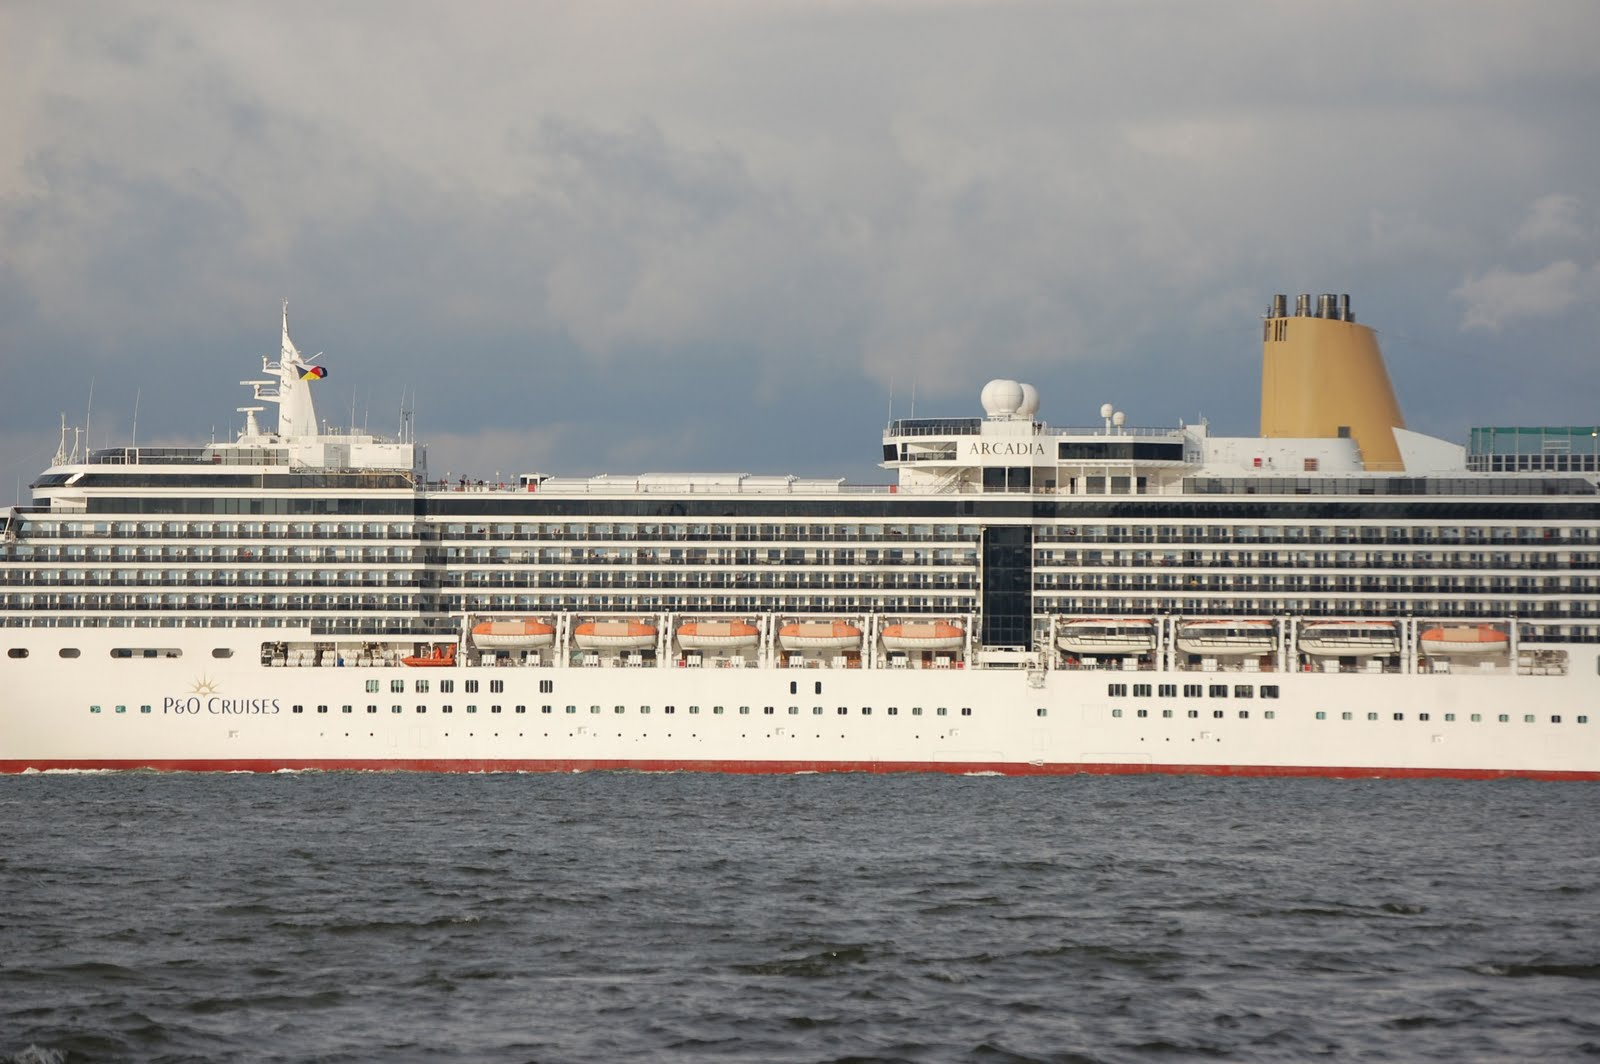 NAVIGATION-Cruising And Maritime Themes Cruise Ship U0026quot;ARCADIAu0026quot; At Liverpool Last Month